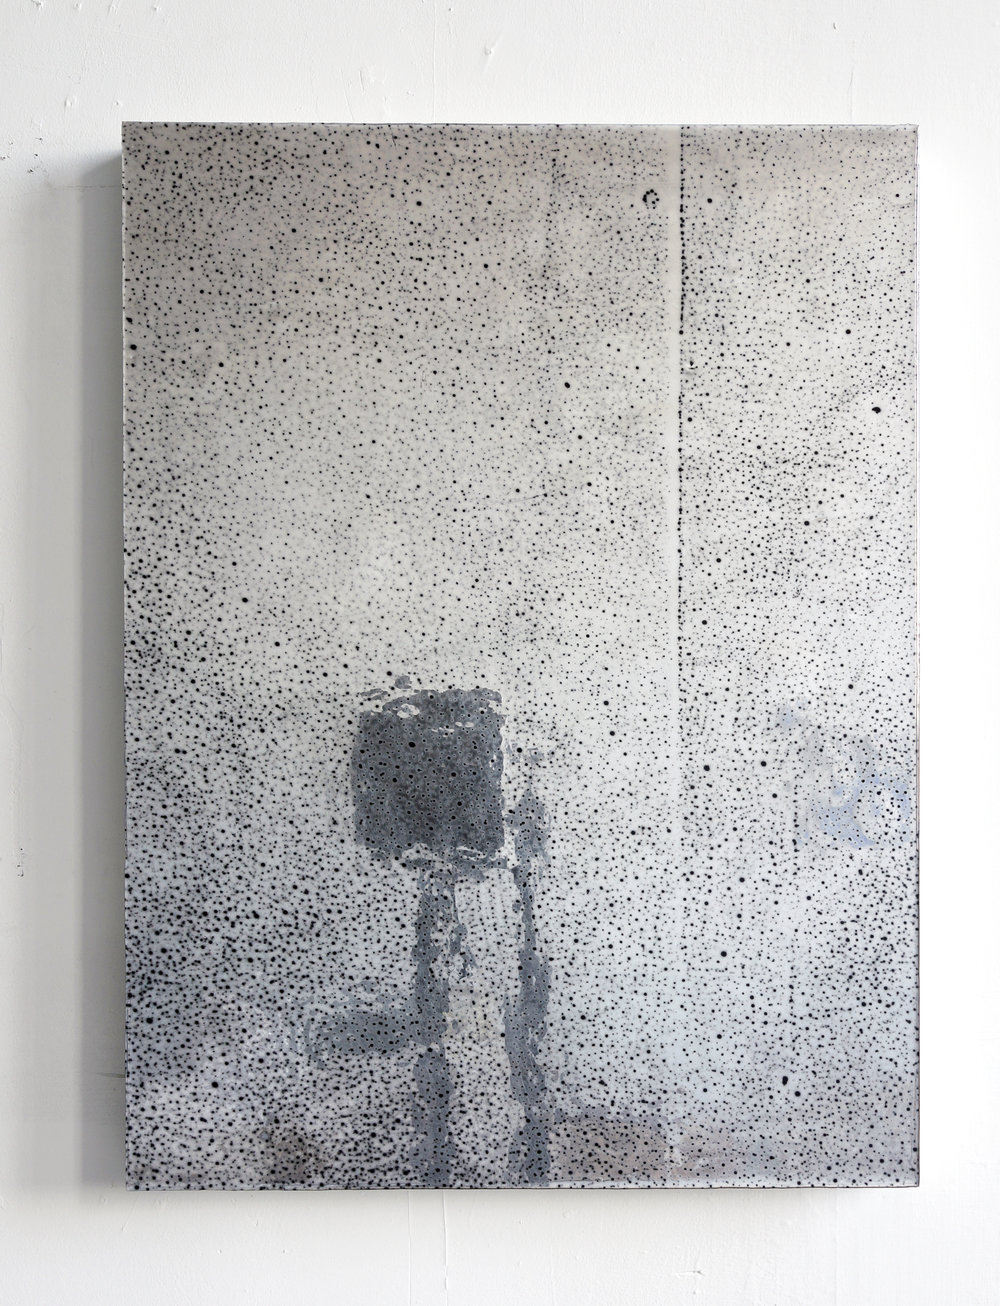 24 by 18 (wall), 2017